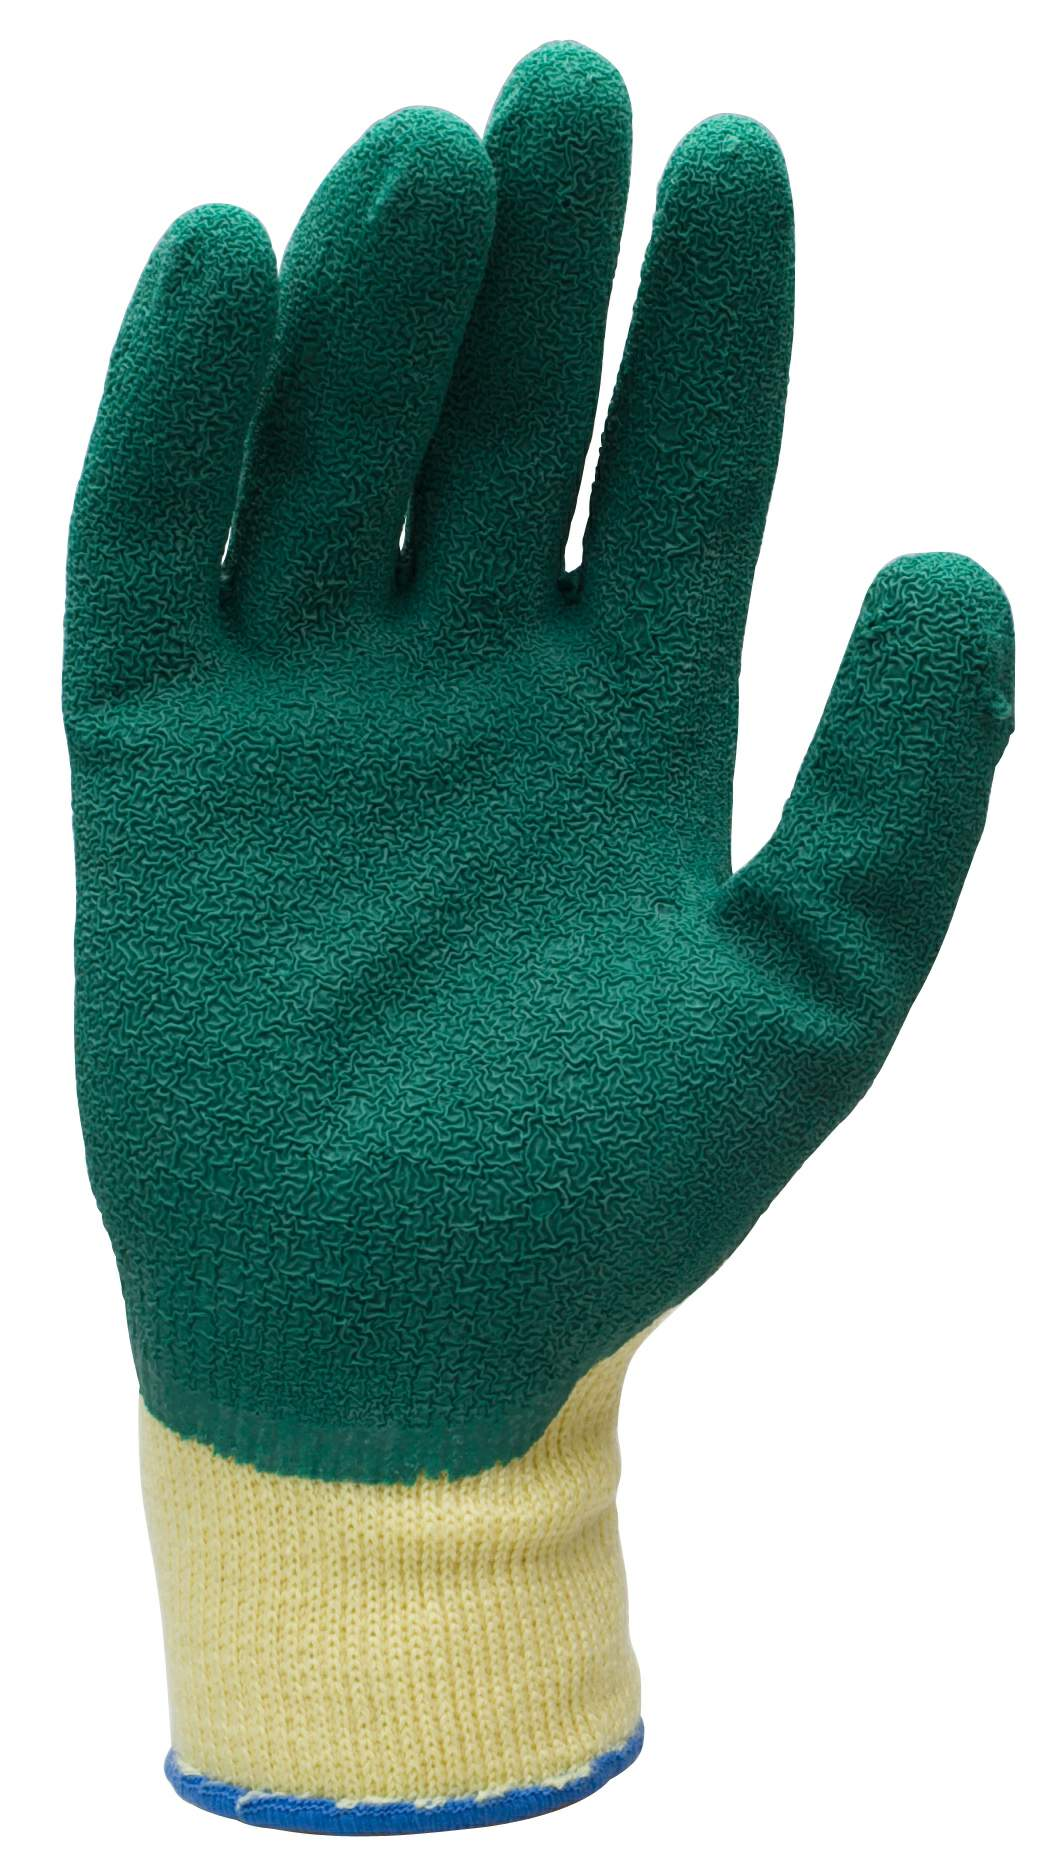 Thumbnail - GREEN RUBBER GRIP GLOVES SIZE 11